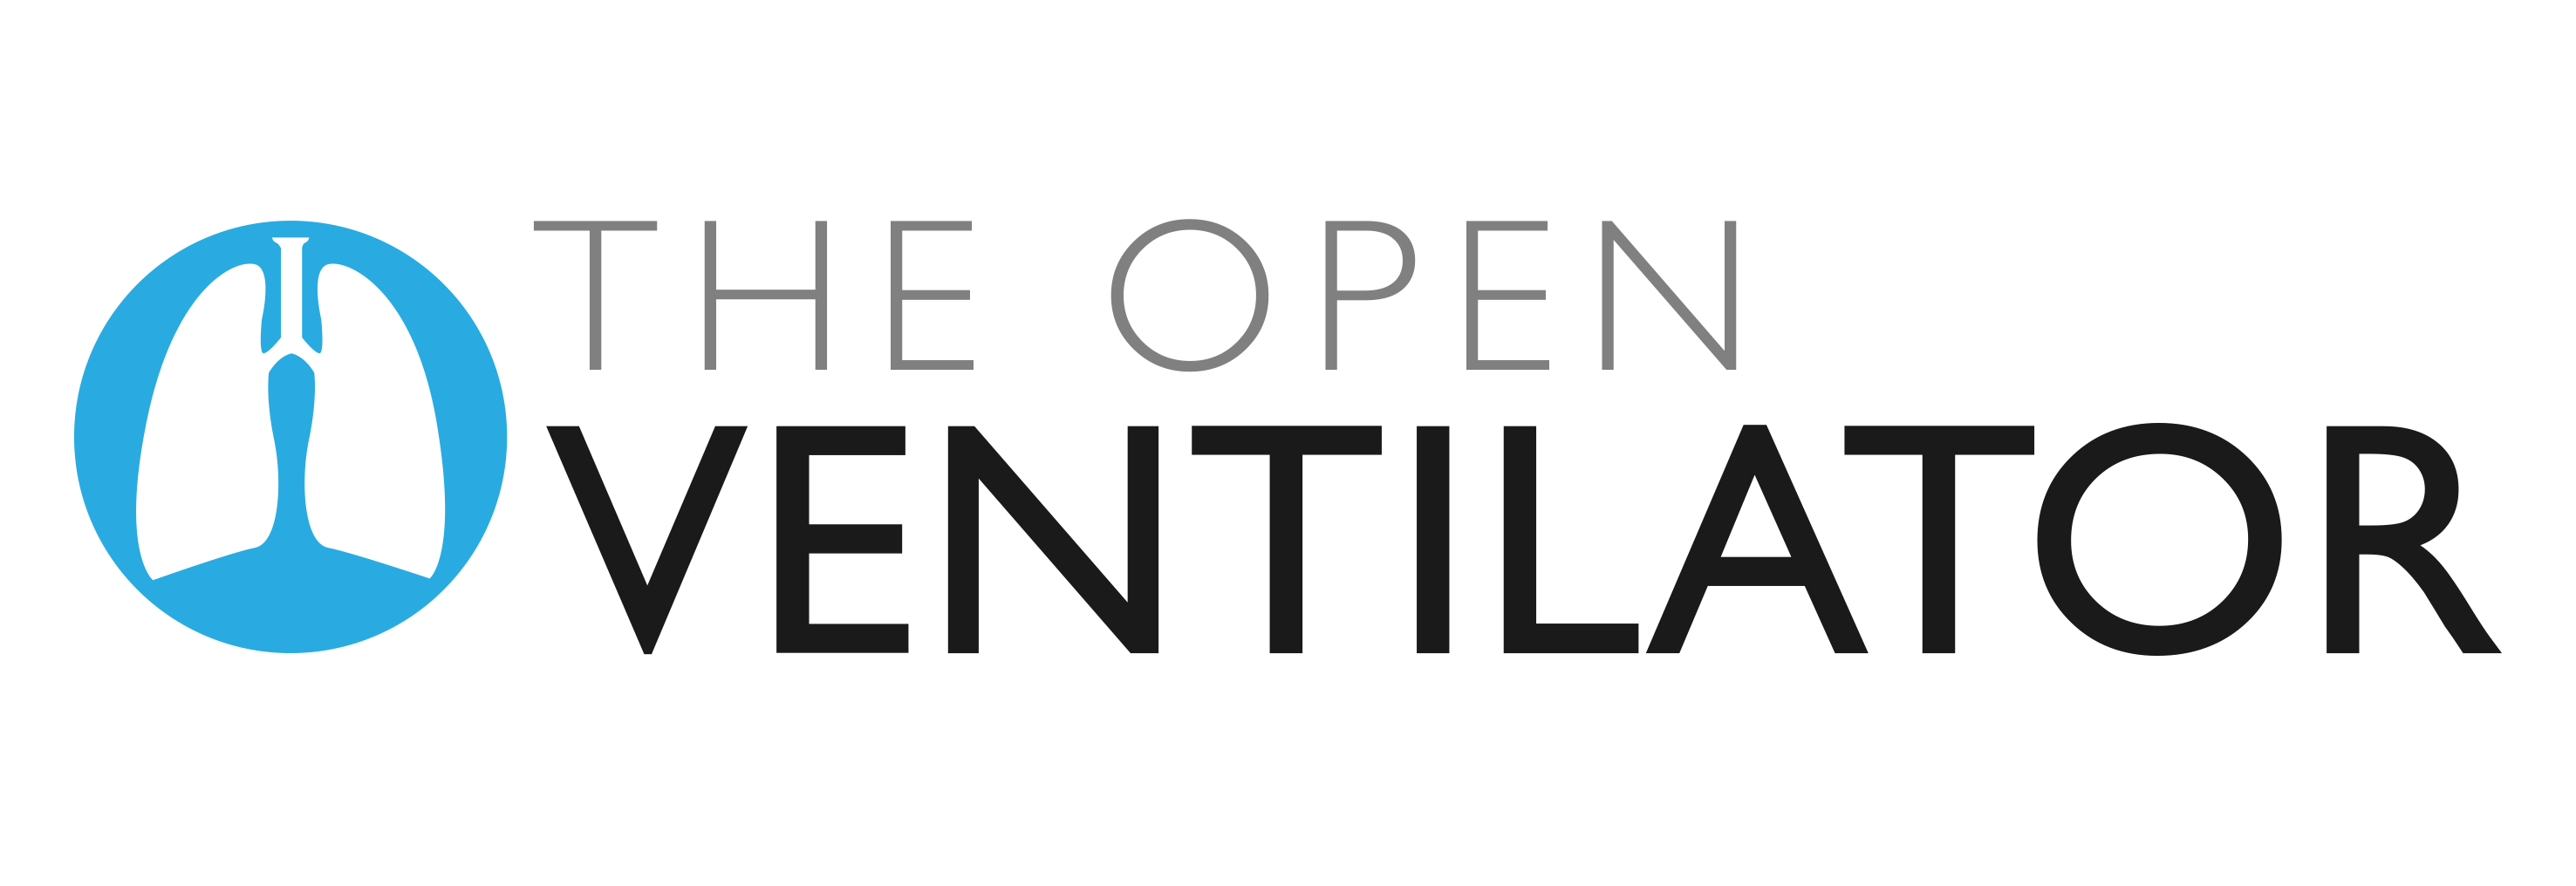 The Open Ventilator Logo